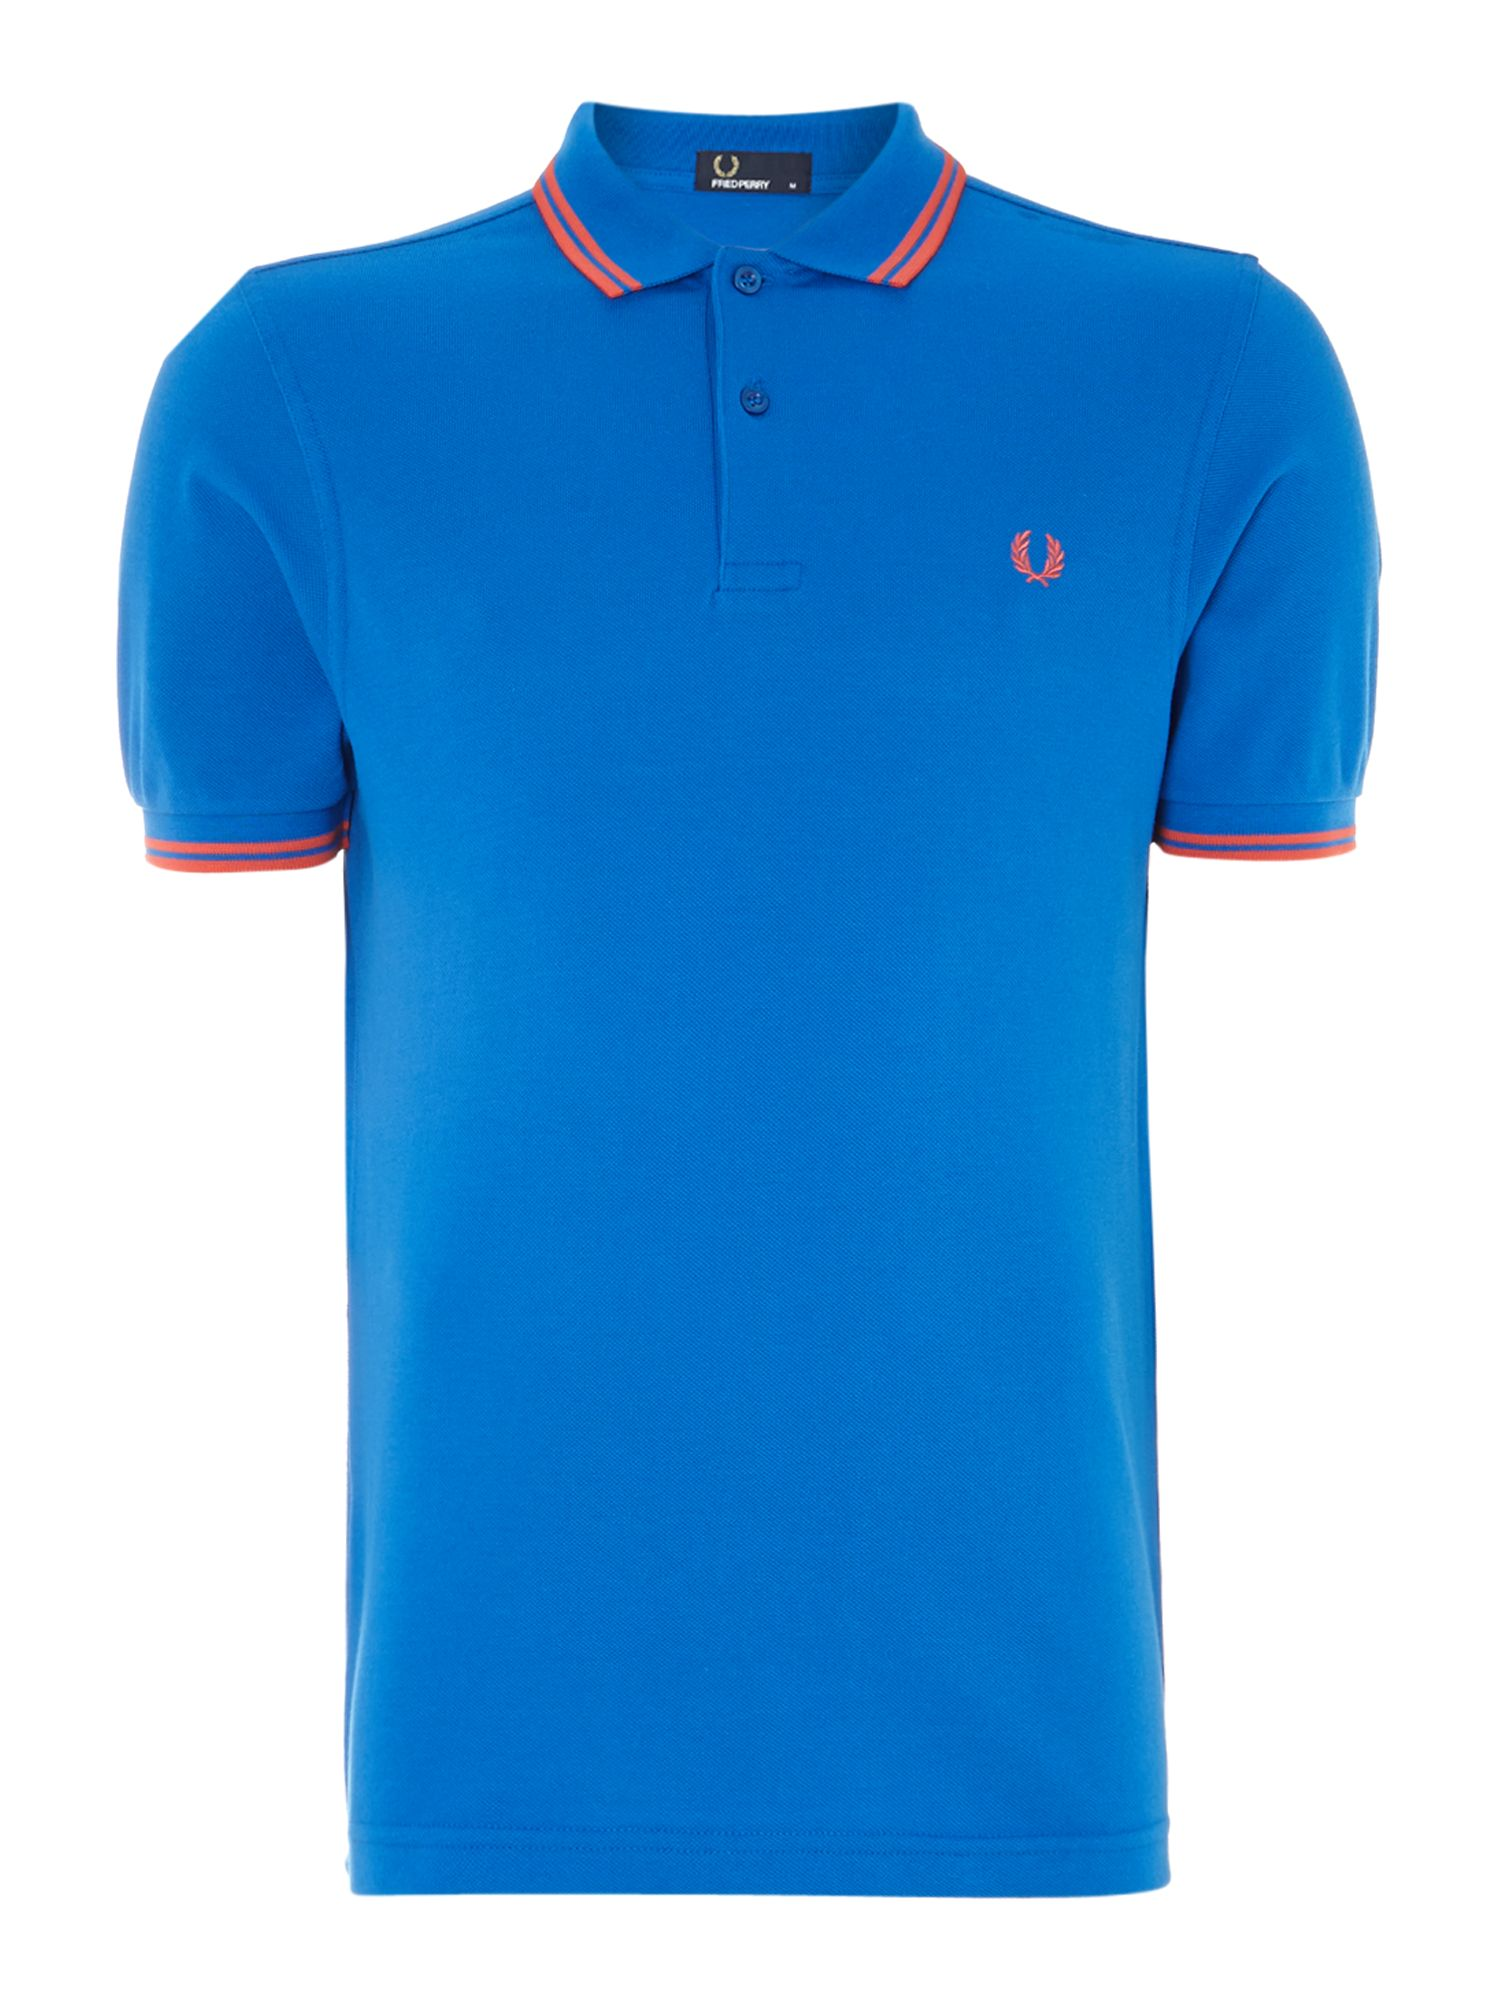 Classic regular fit twin tipped polo shirt